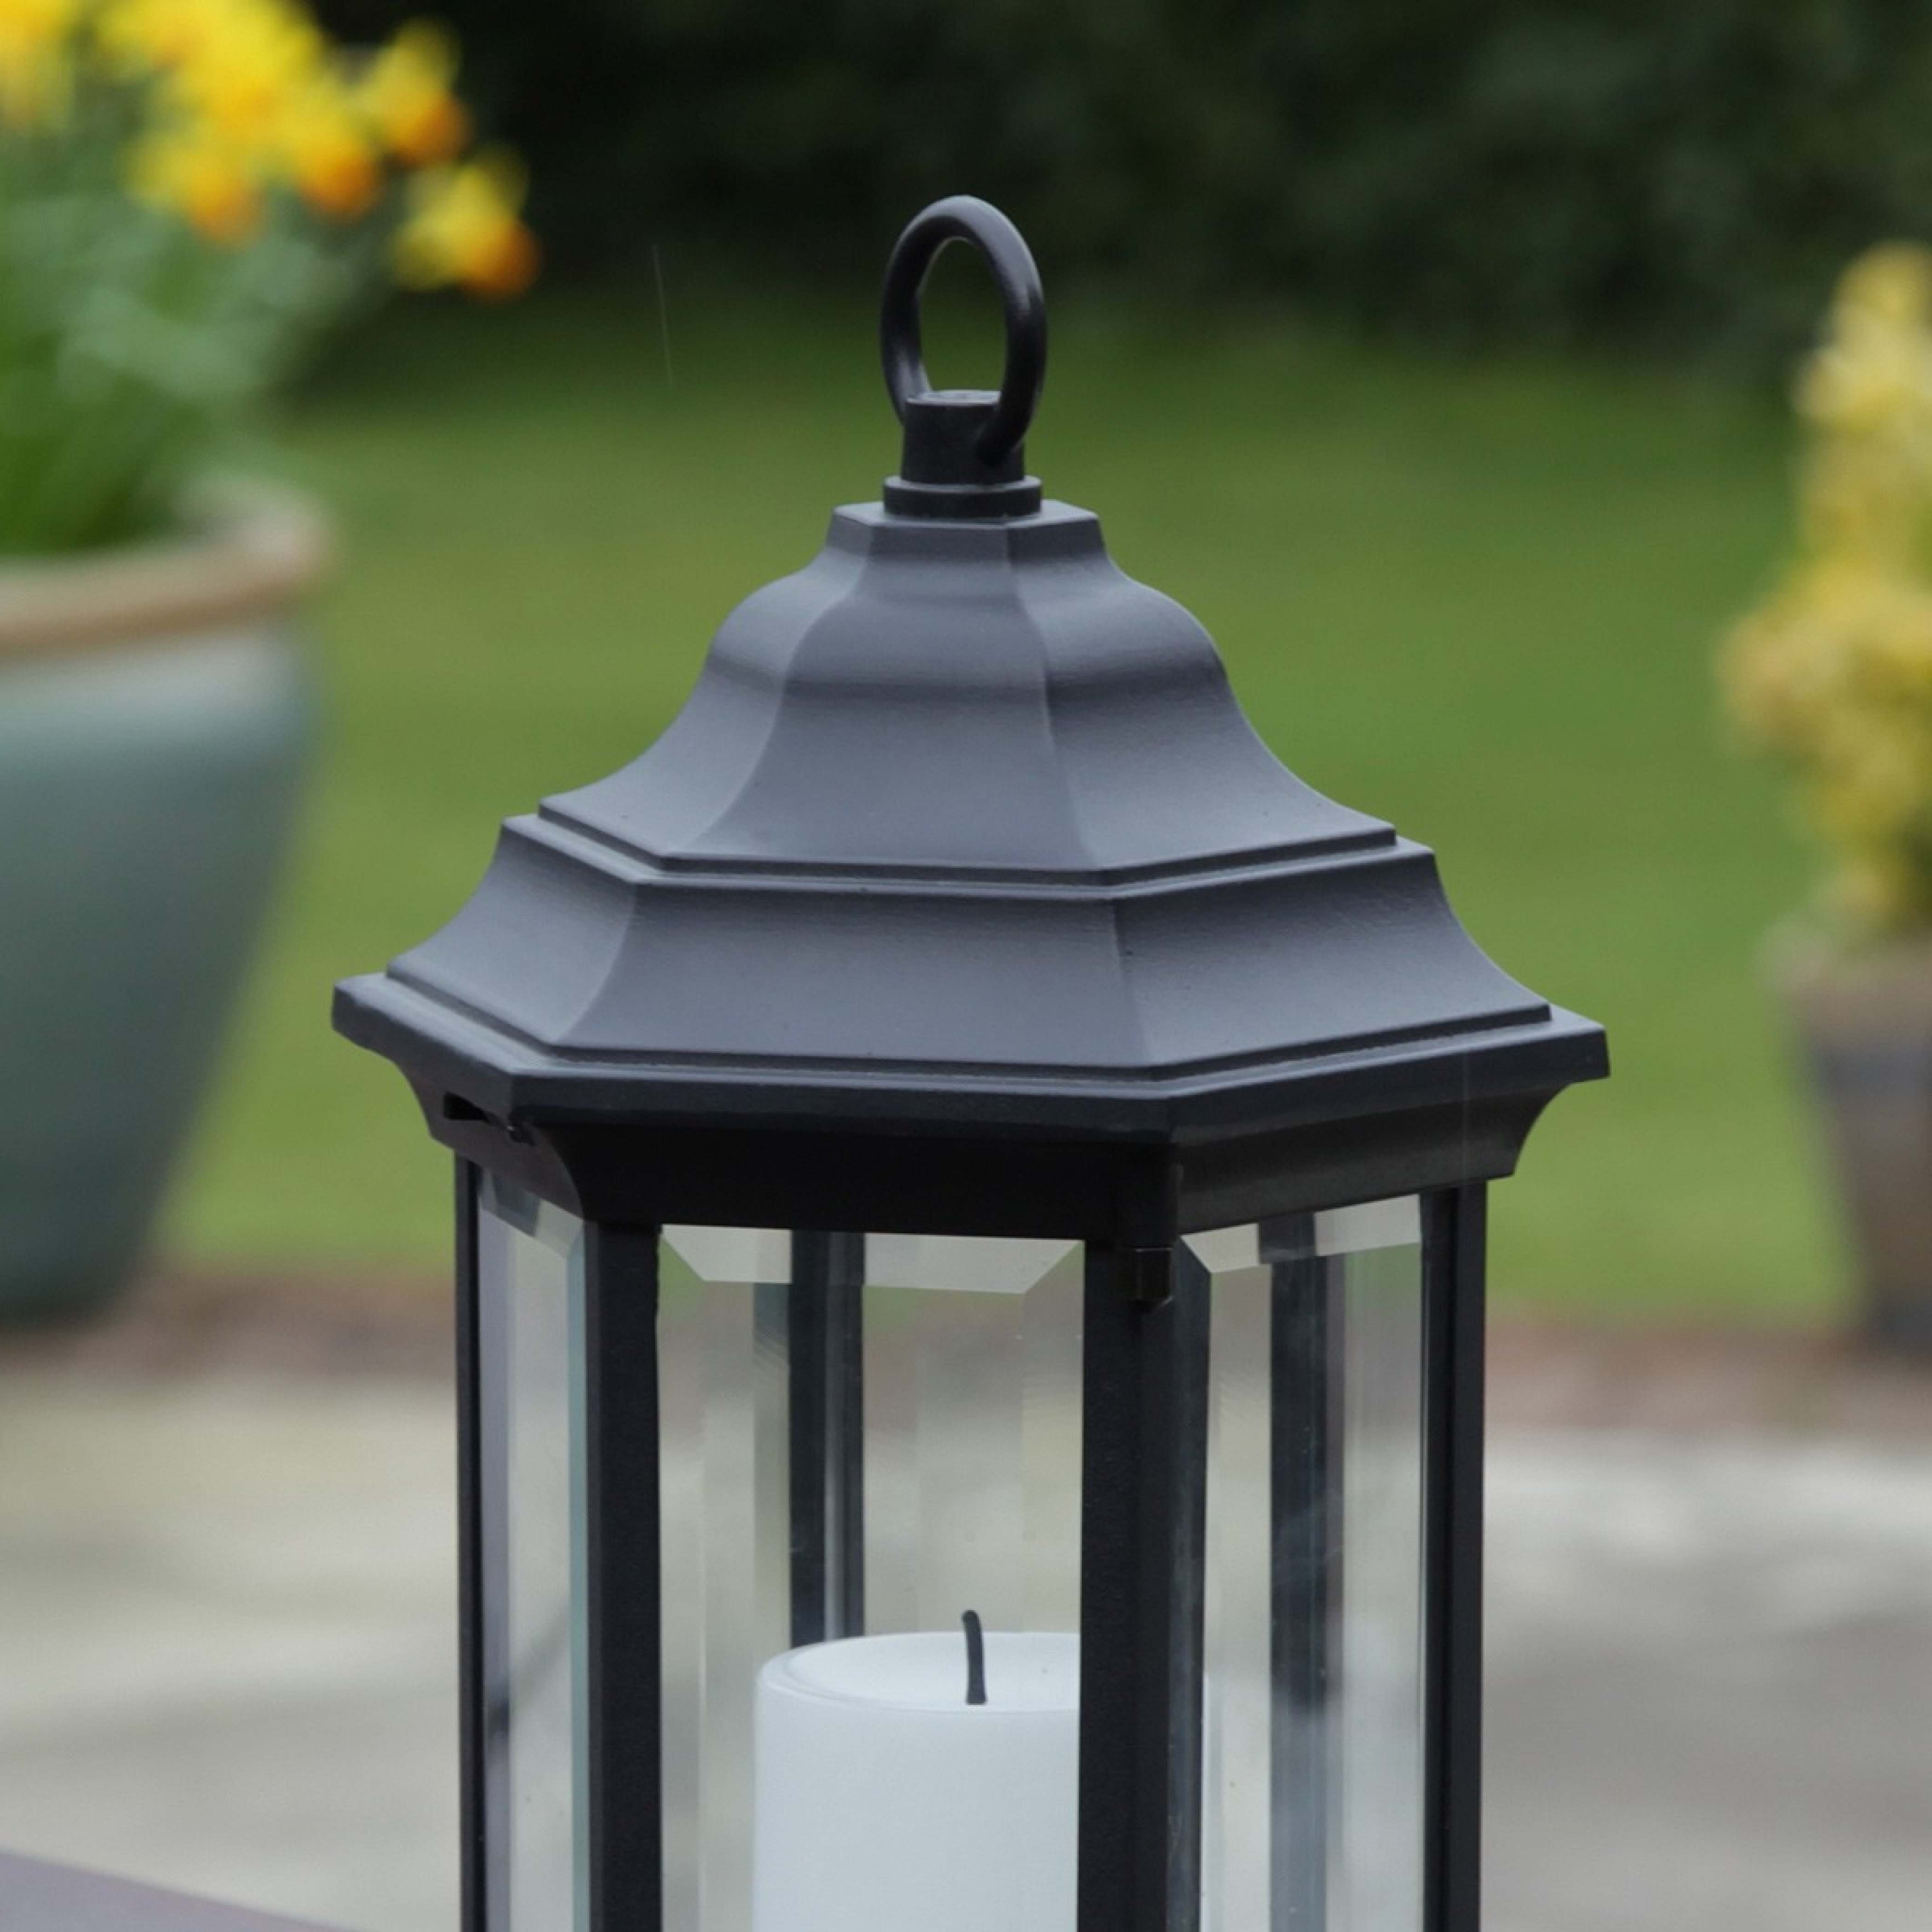 Preferred Battery Operated Outdoor Lanterns With Timer – Outdoor Ideas For Outdoor Lanterns With Battery Operated (View 17 of 20)